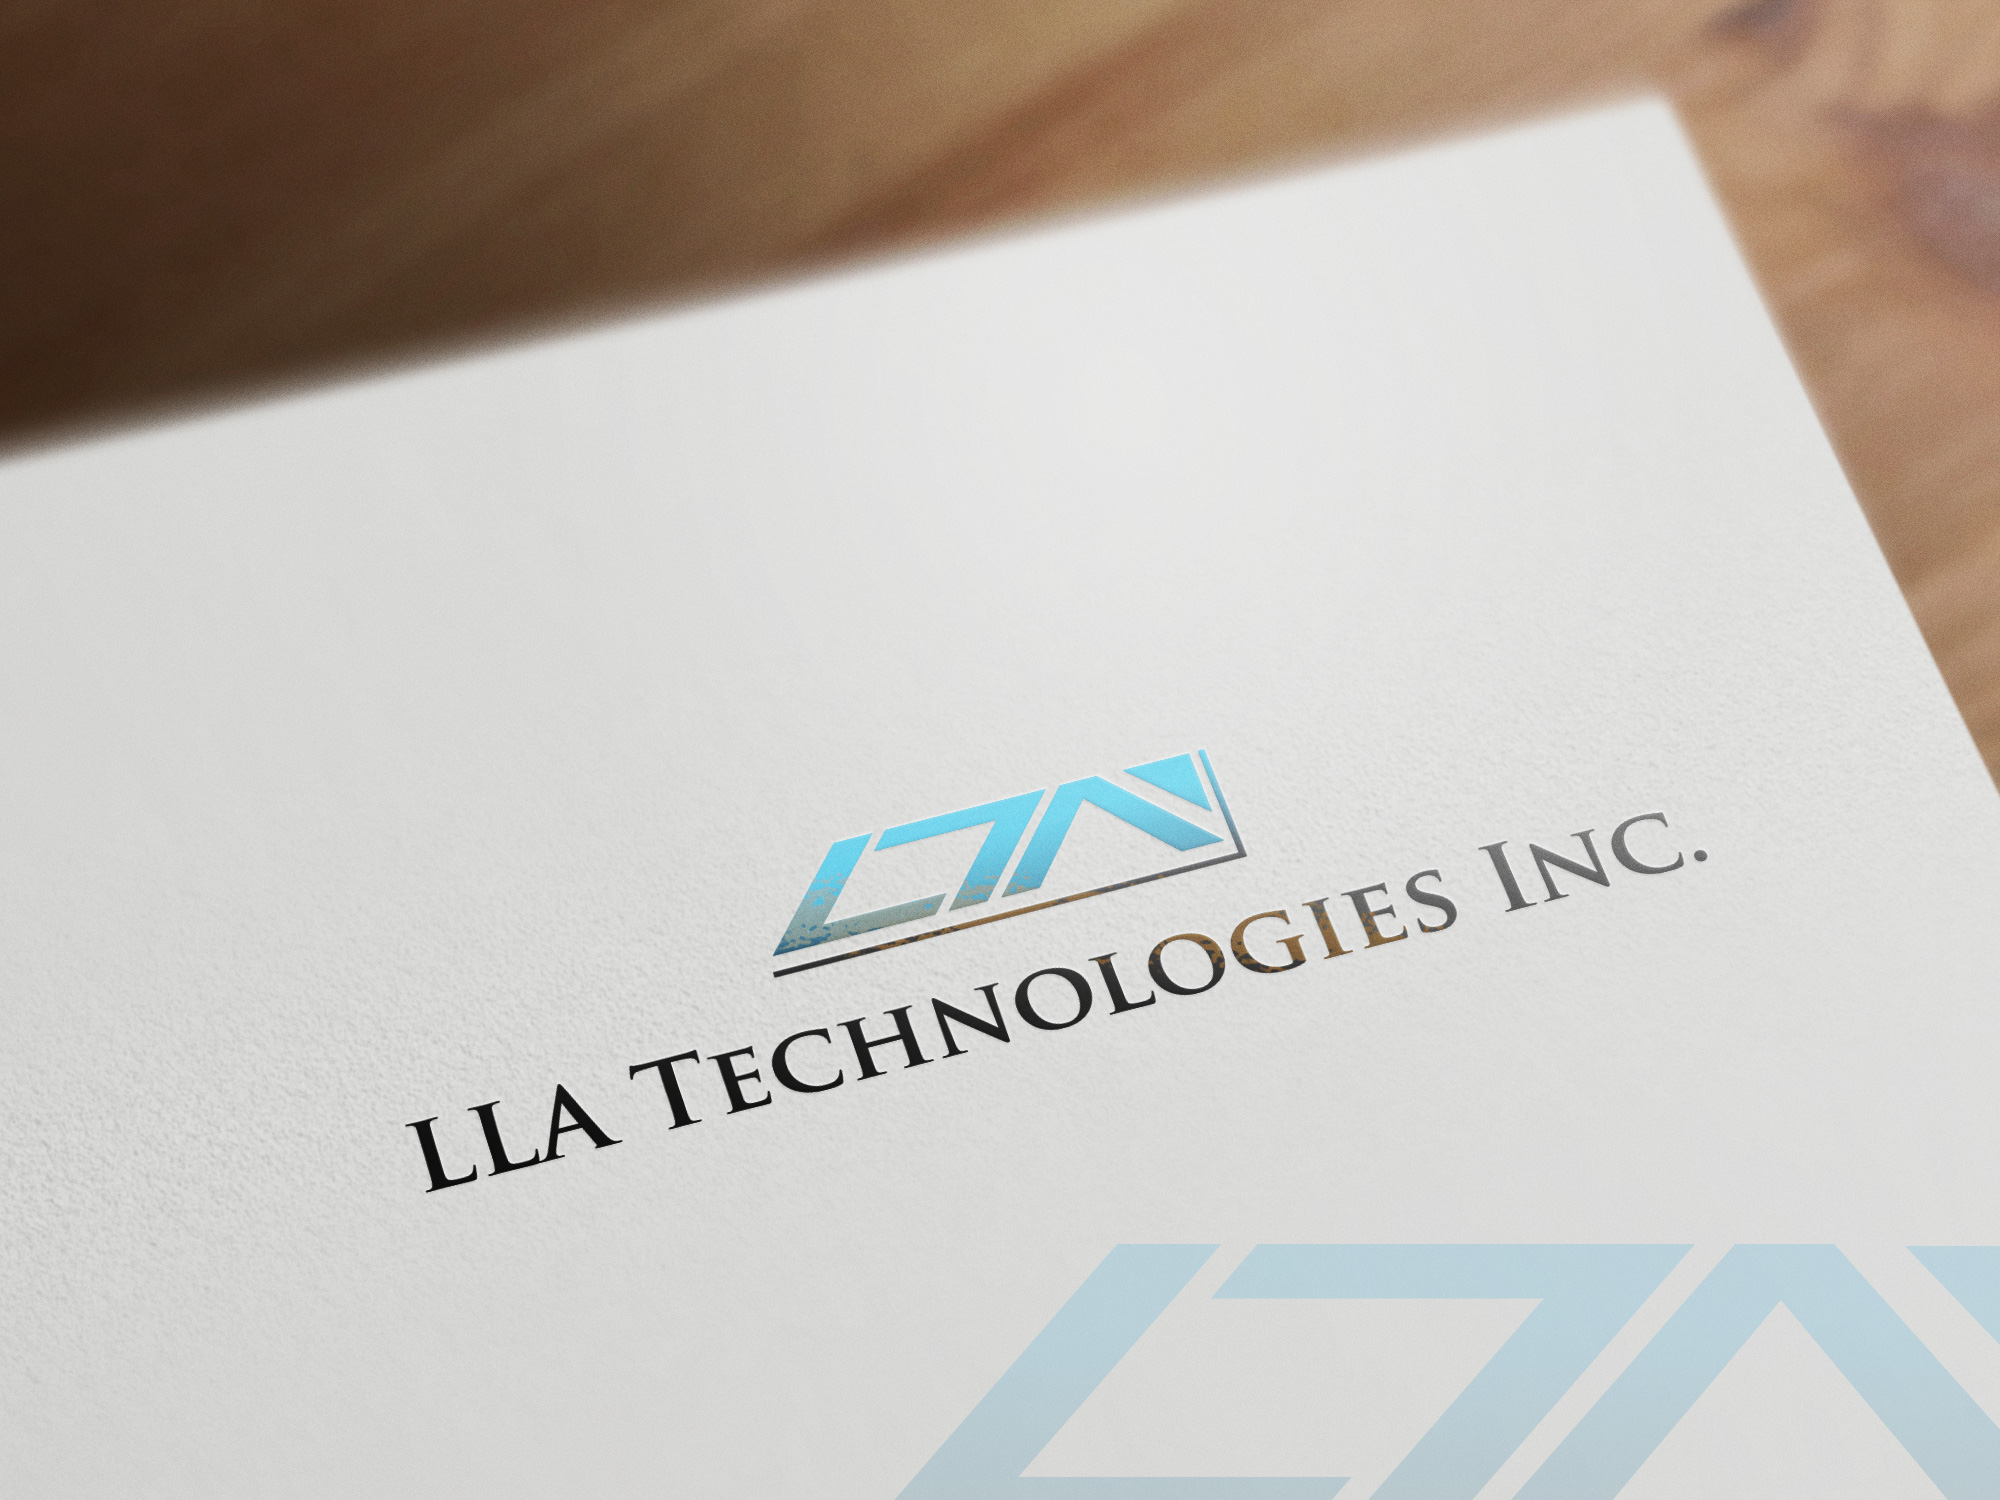 Logo Design by olii - Entry No. 37 in the Logo Design Contest Inspiring Logo Design for LLA Technologies Inc..